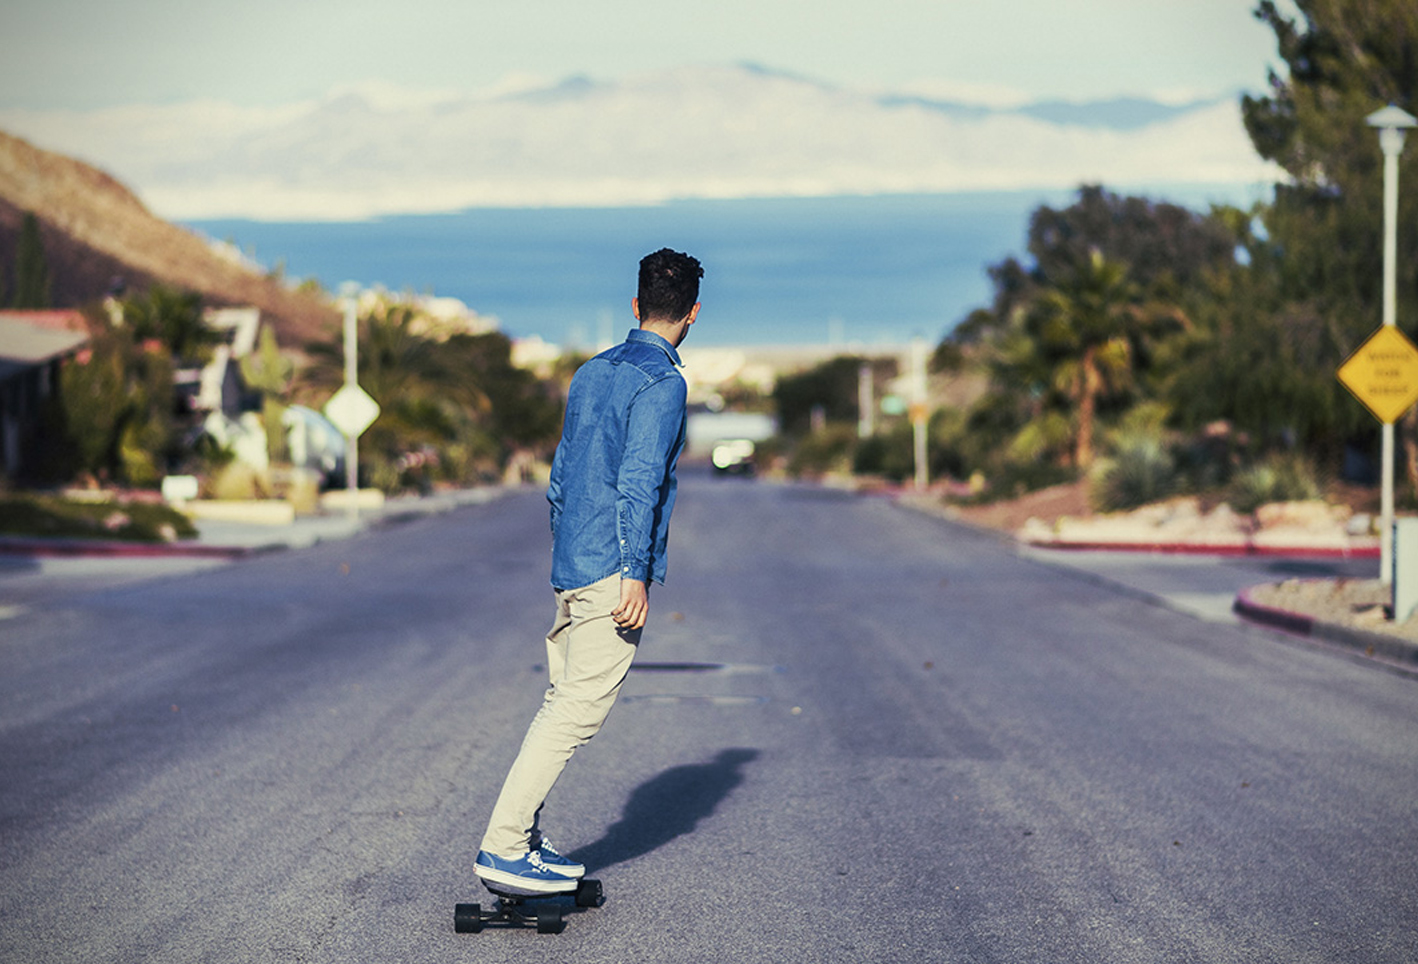 WHY AN ELECTRIC SKATEBOARD